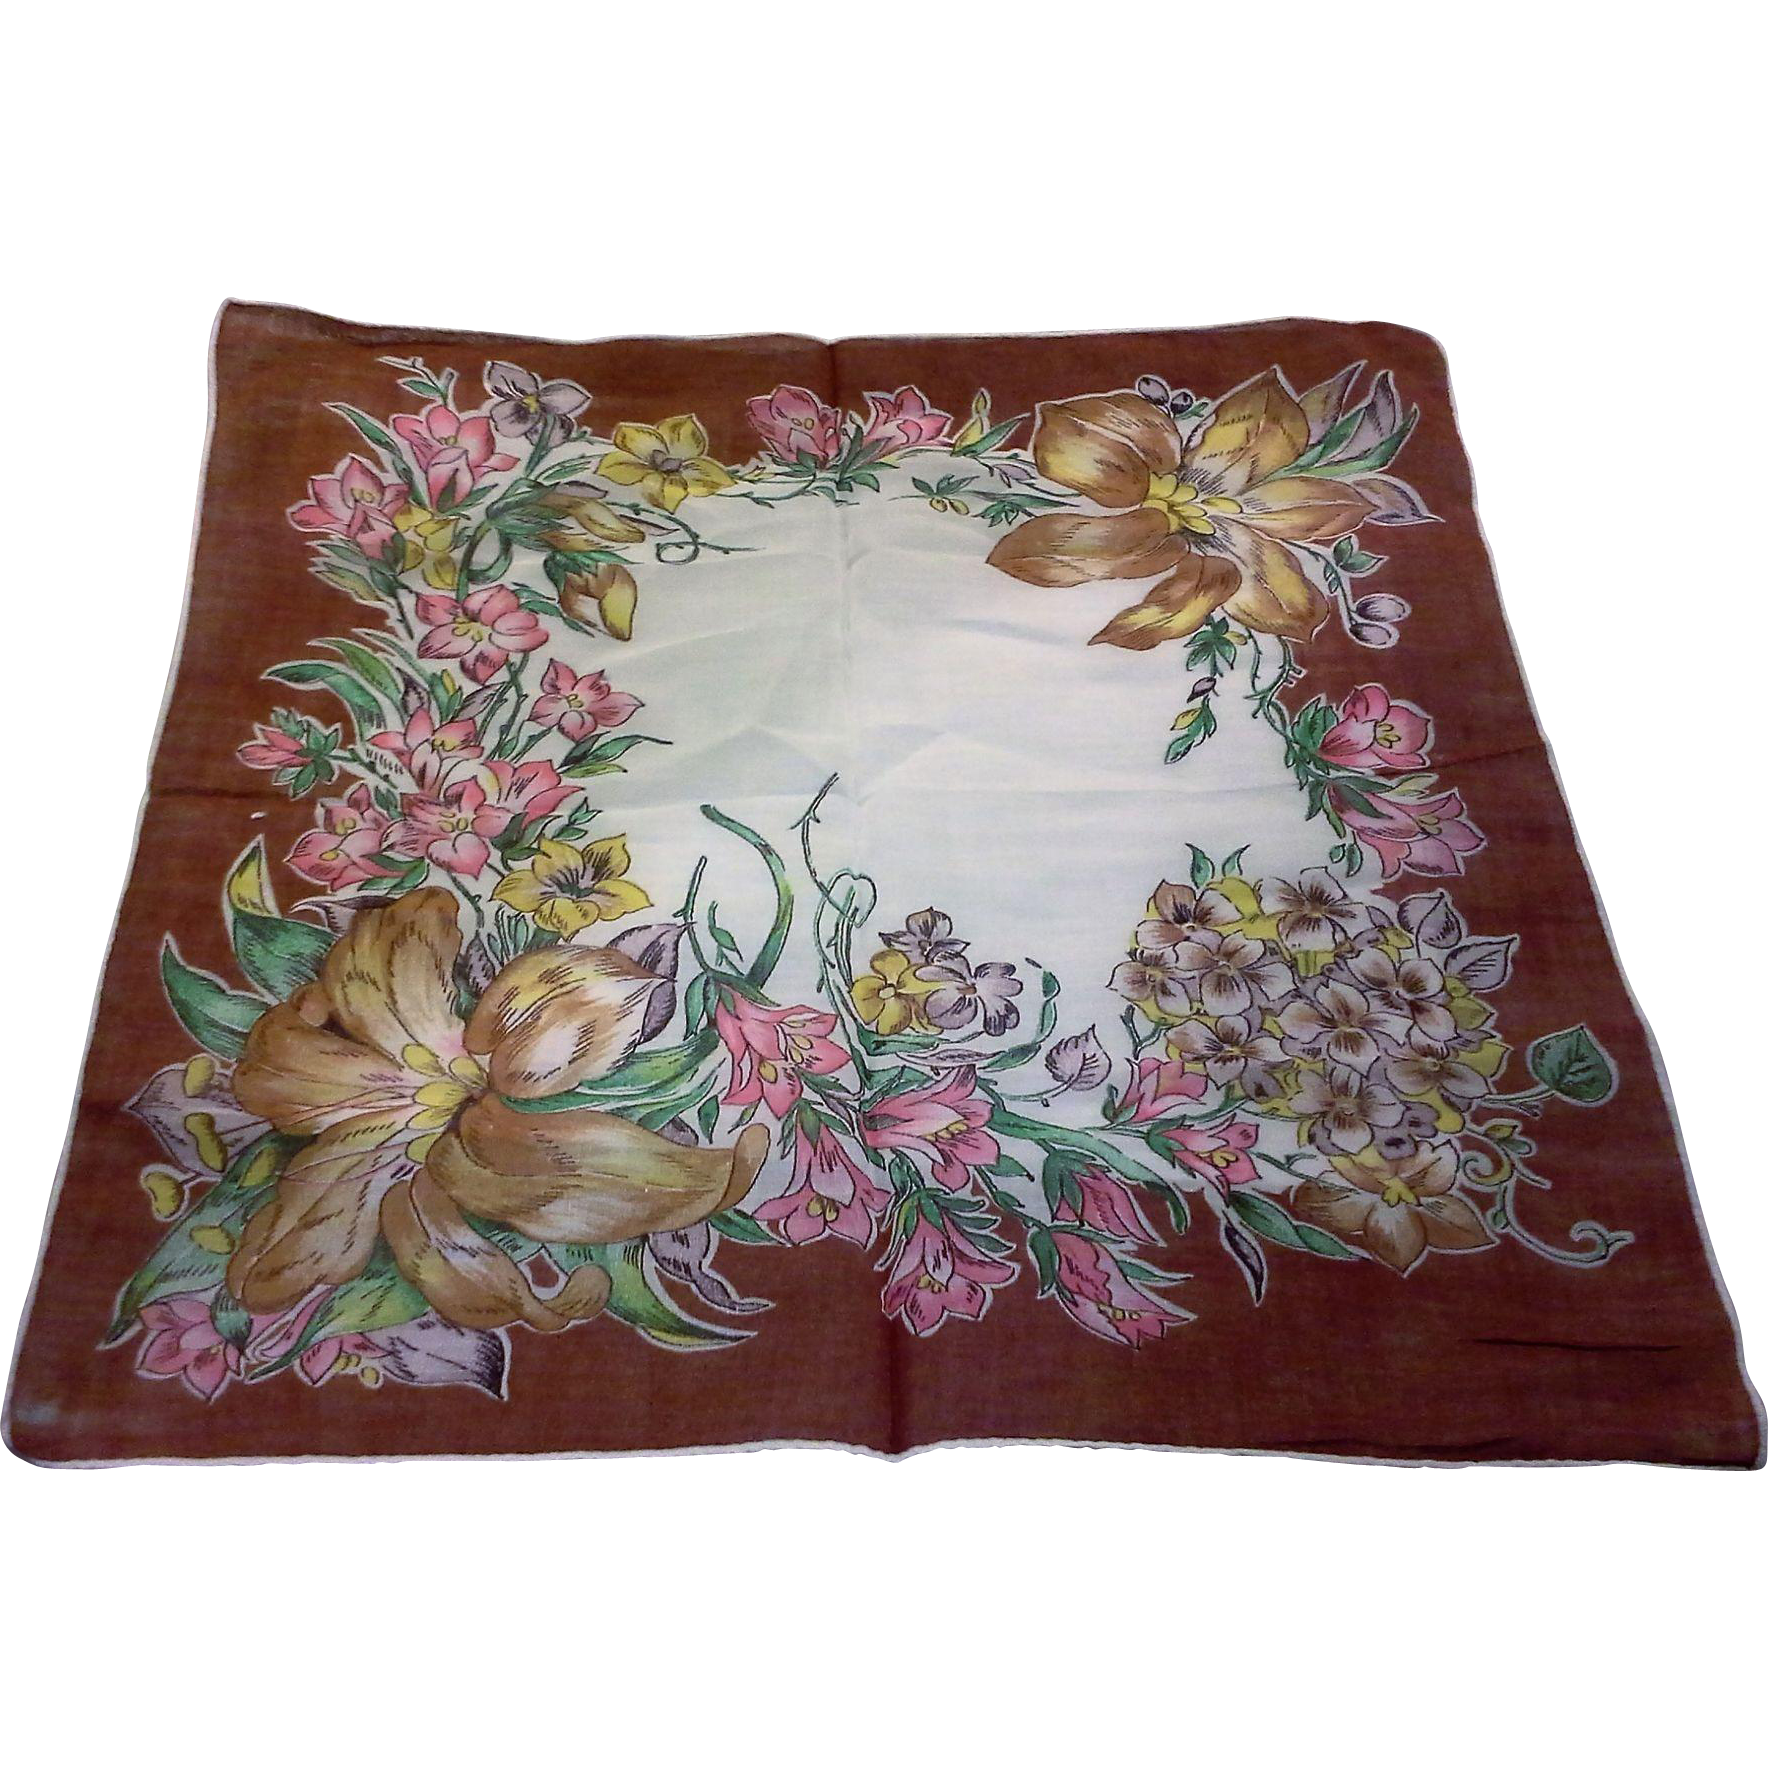 Brown Edge Fall Colors Floral Cotton Lawn Handkerchief Hanky Ladies